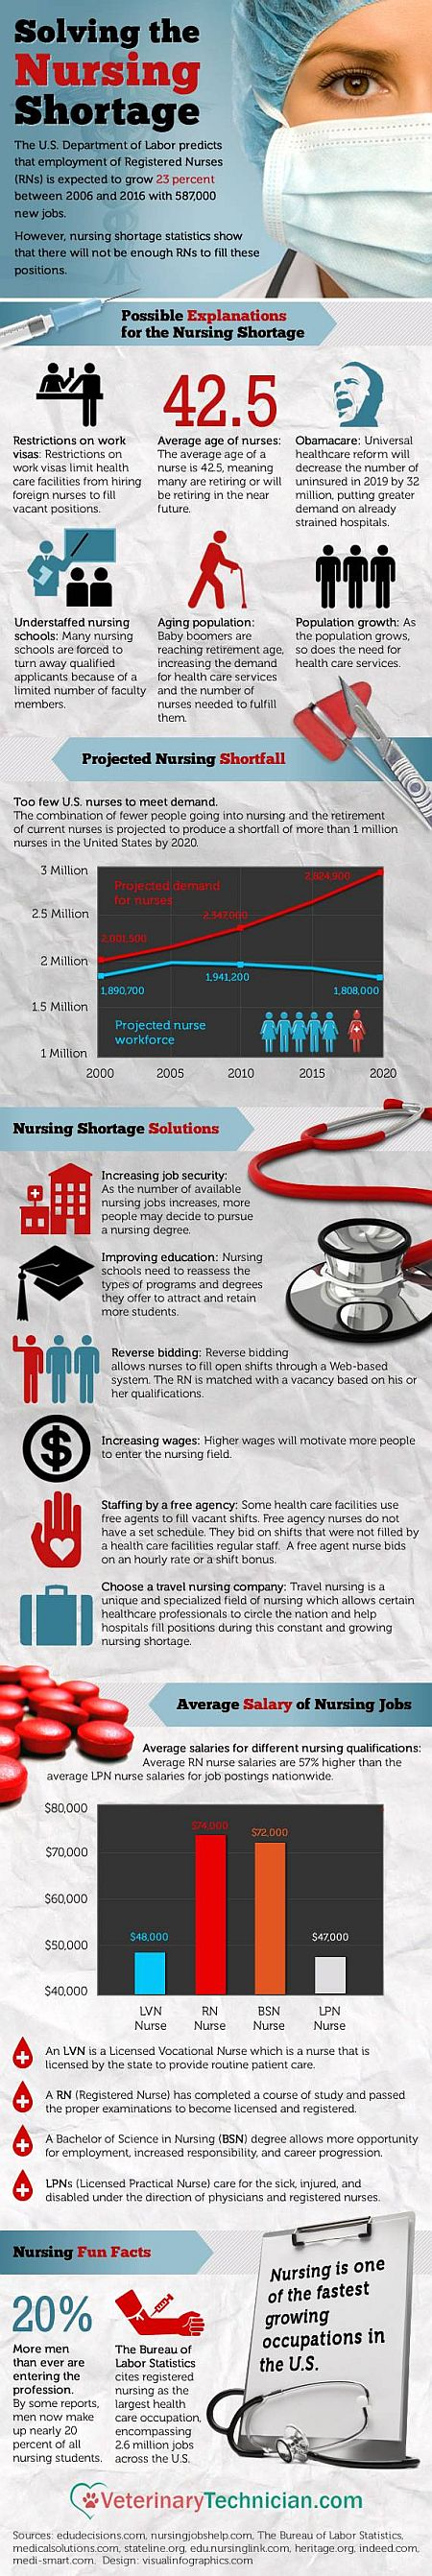 Solving the Nursing Shortage Crisis